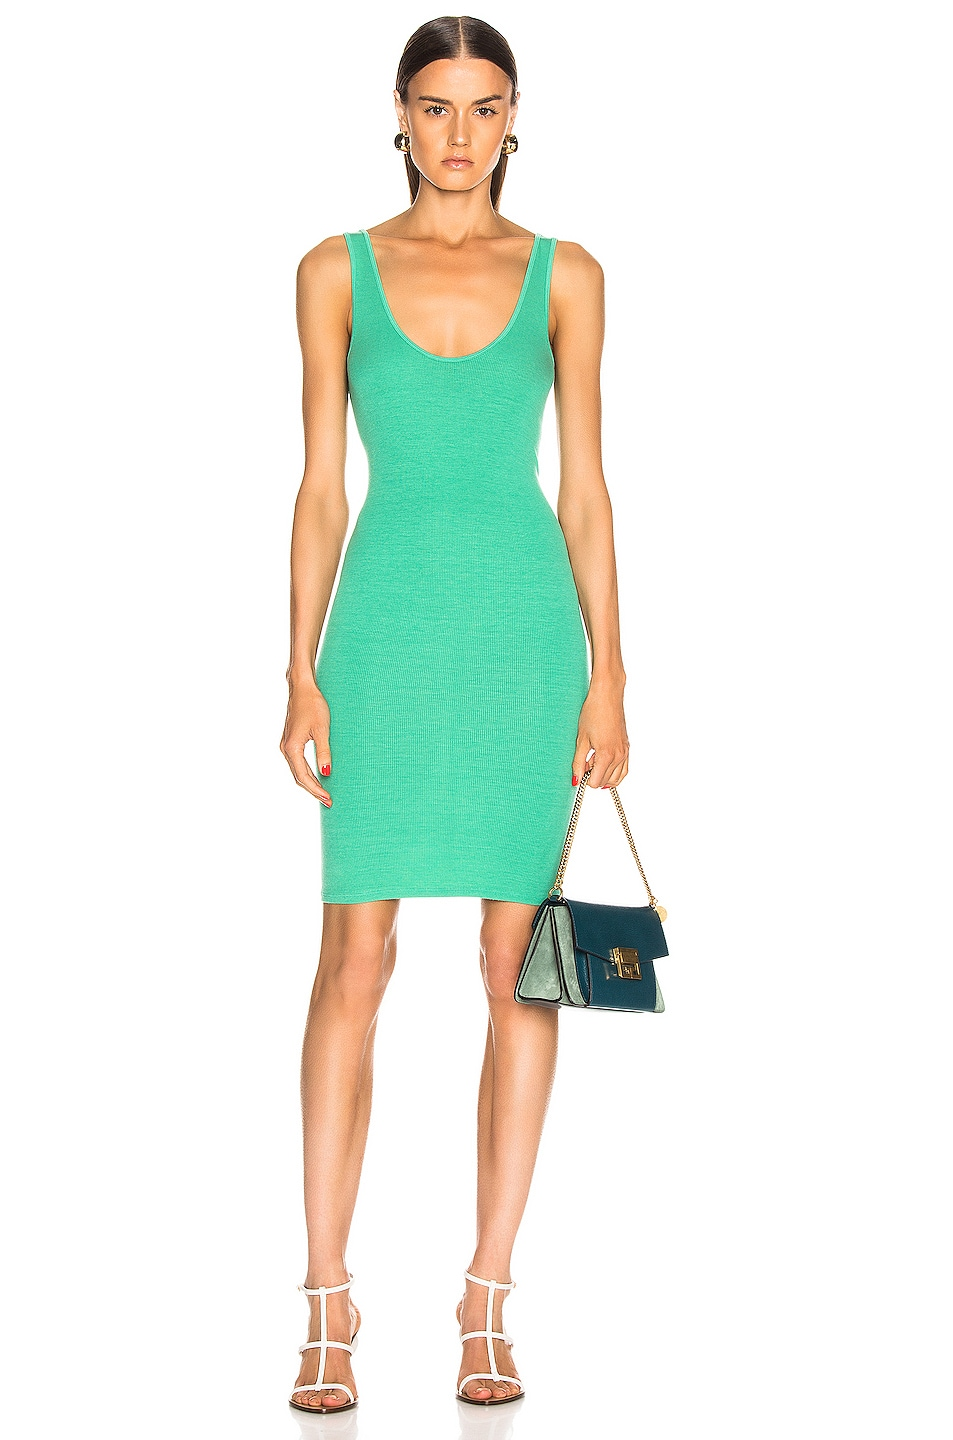 Image 1 of Enza Costa for FWRD Rib Tank Dress in Jade Green